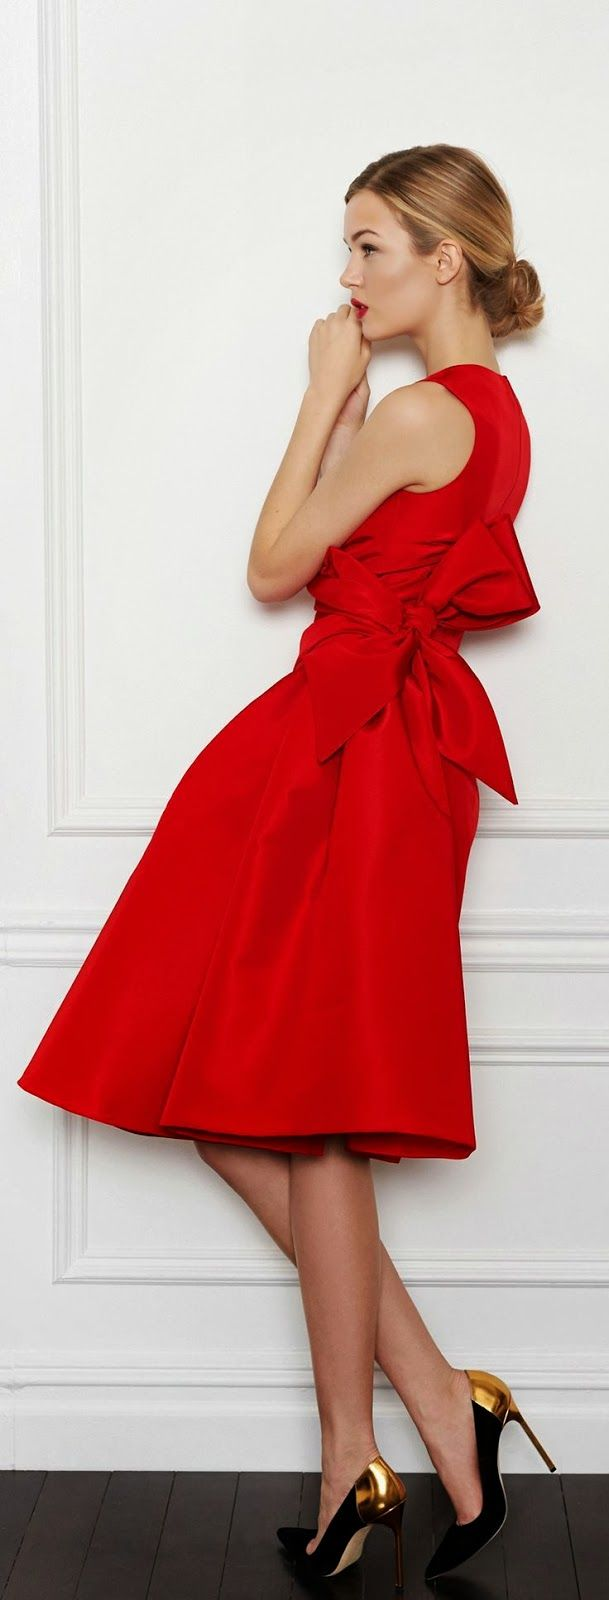 Red dress holiday